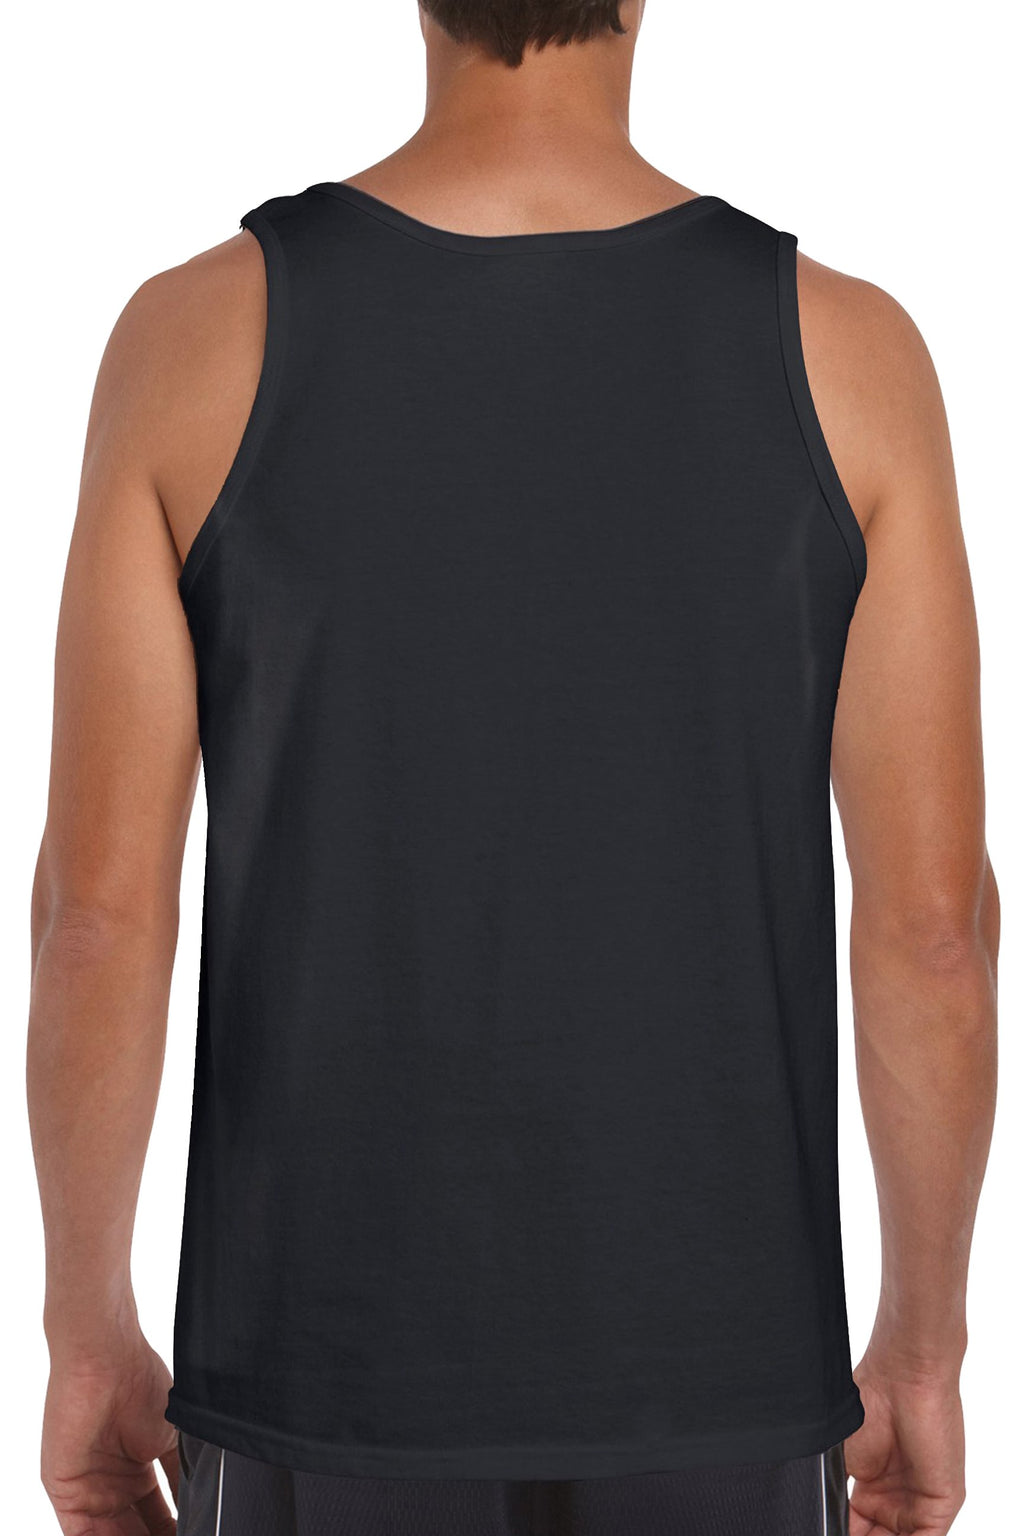 Men's The Man The Legend Tank Top Shirt